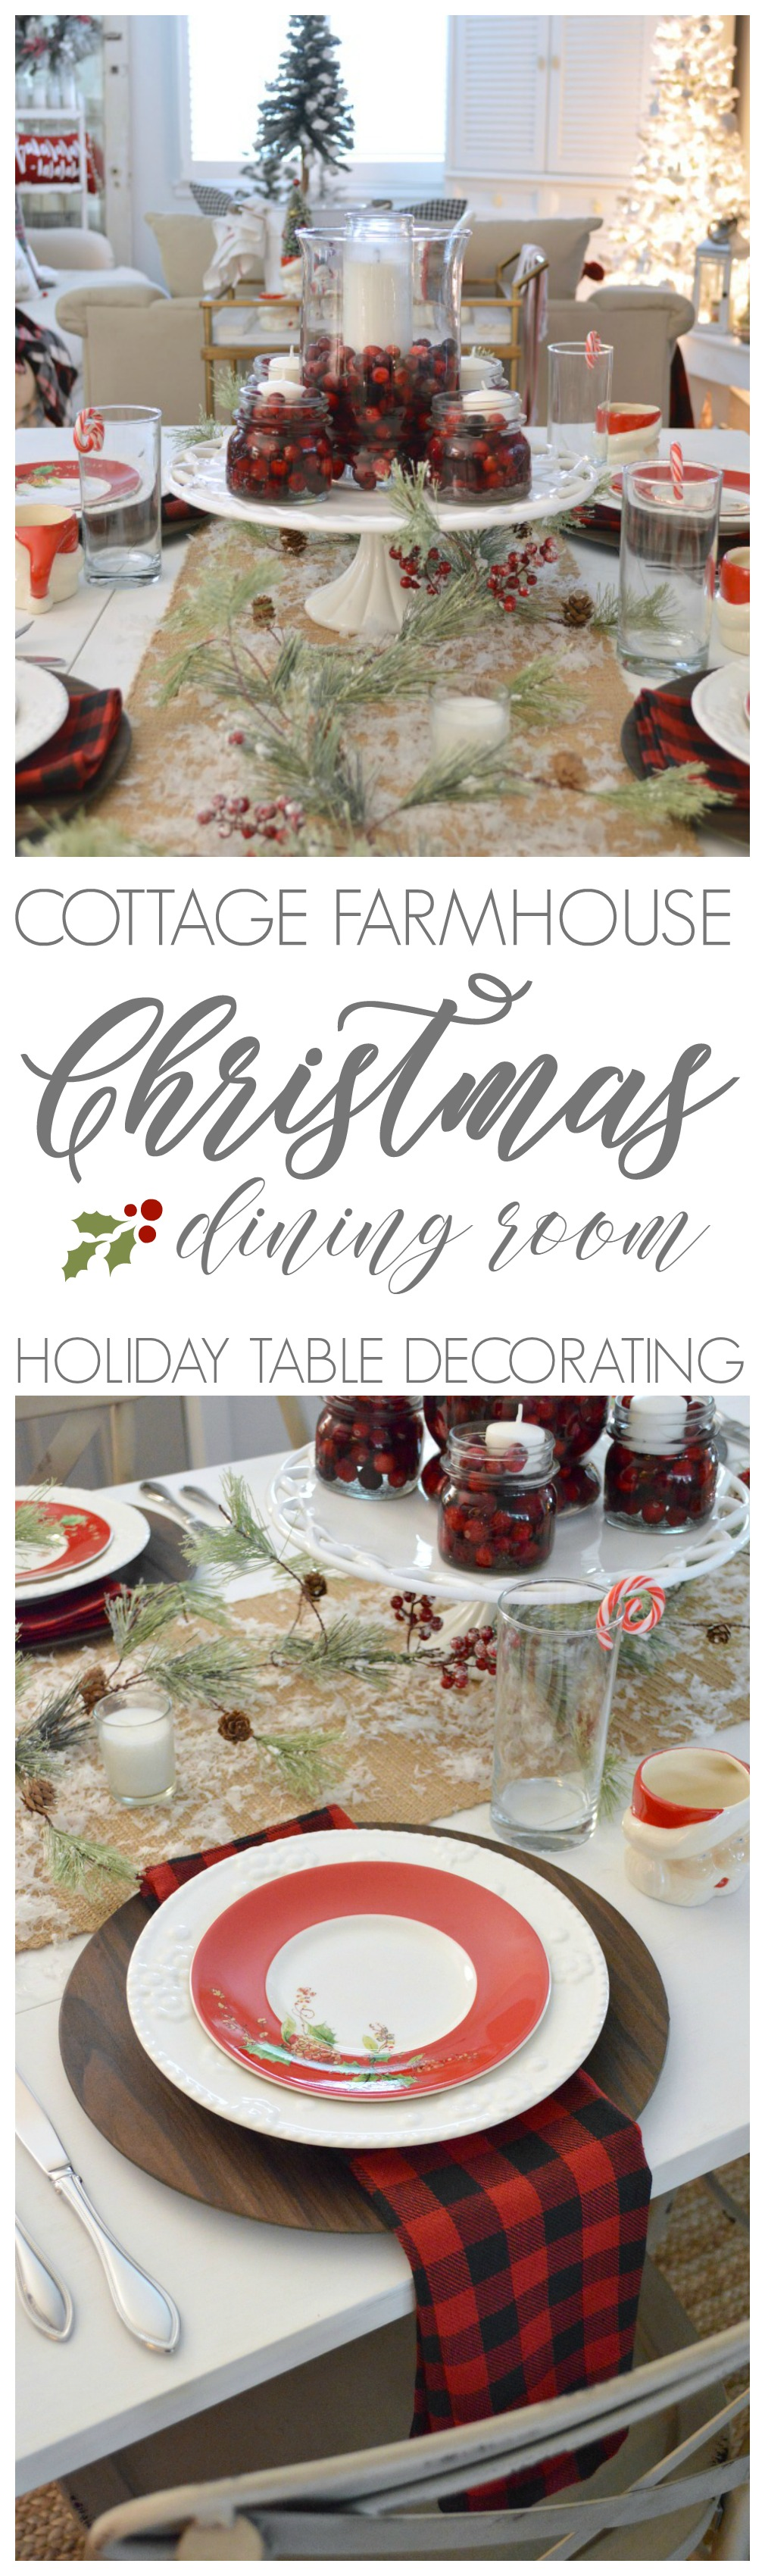 fox-hollow-cottage-farmhouse-christmas-dining-room-holiday-table-decorating-ideas